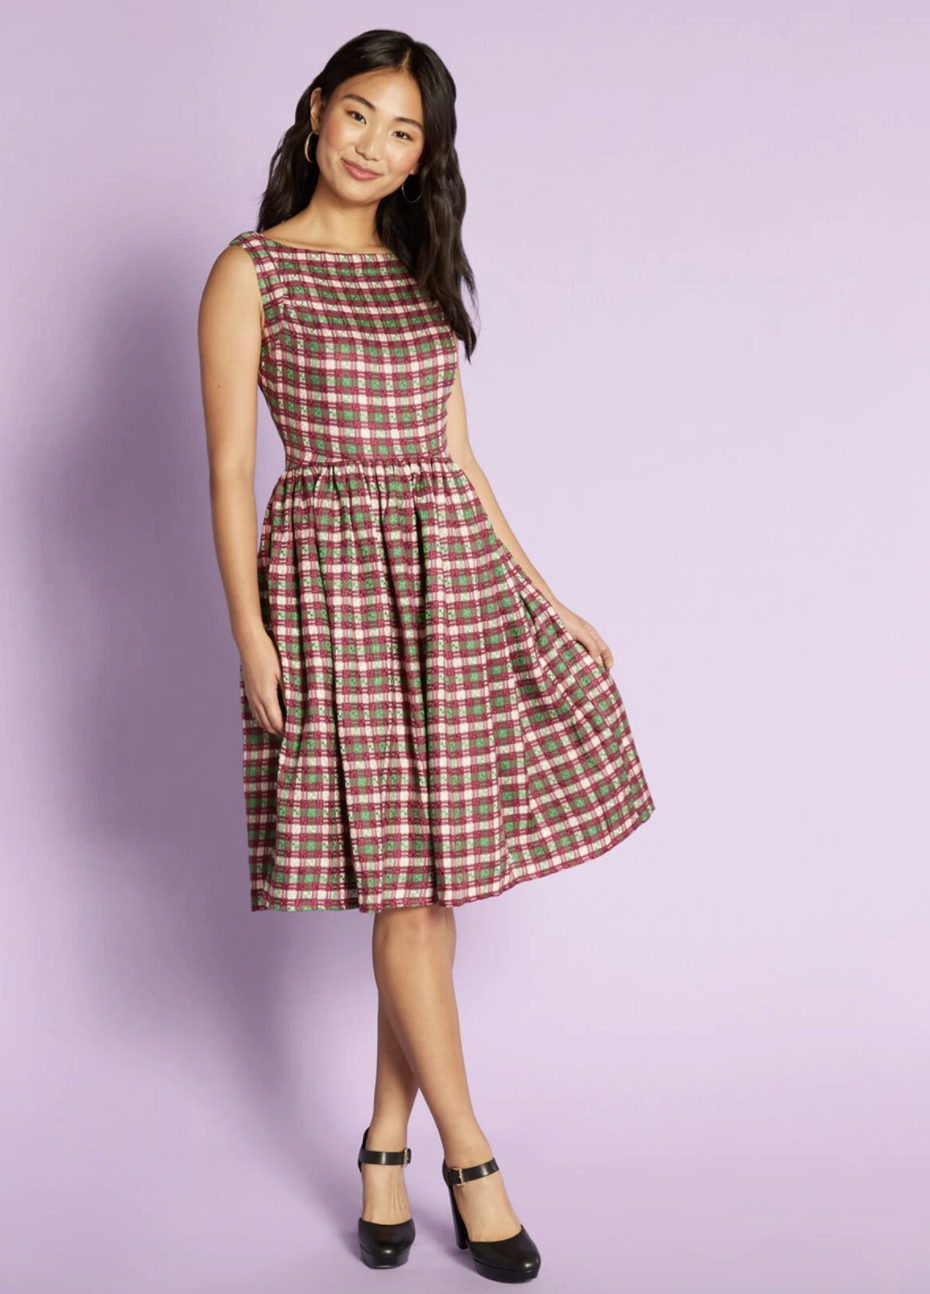 the plaid dress